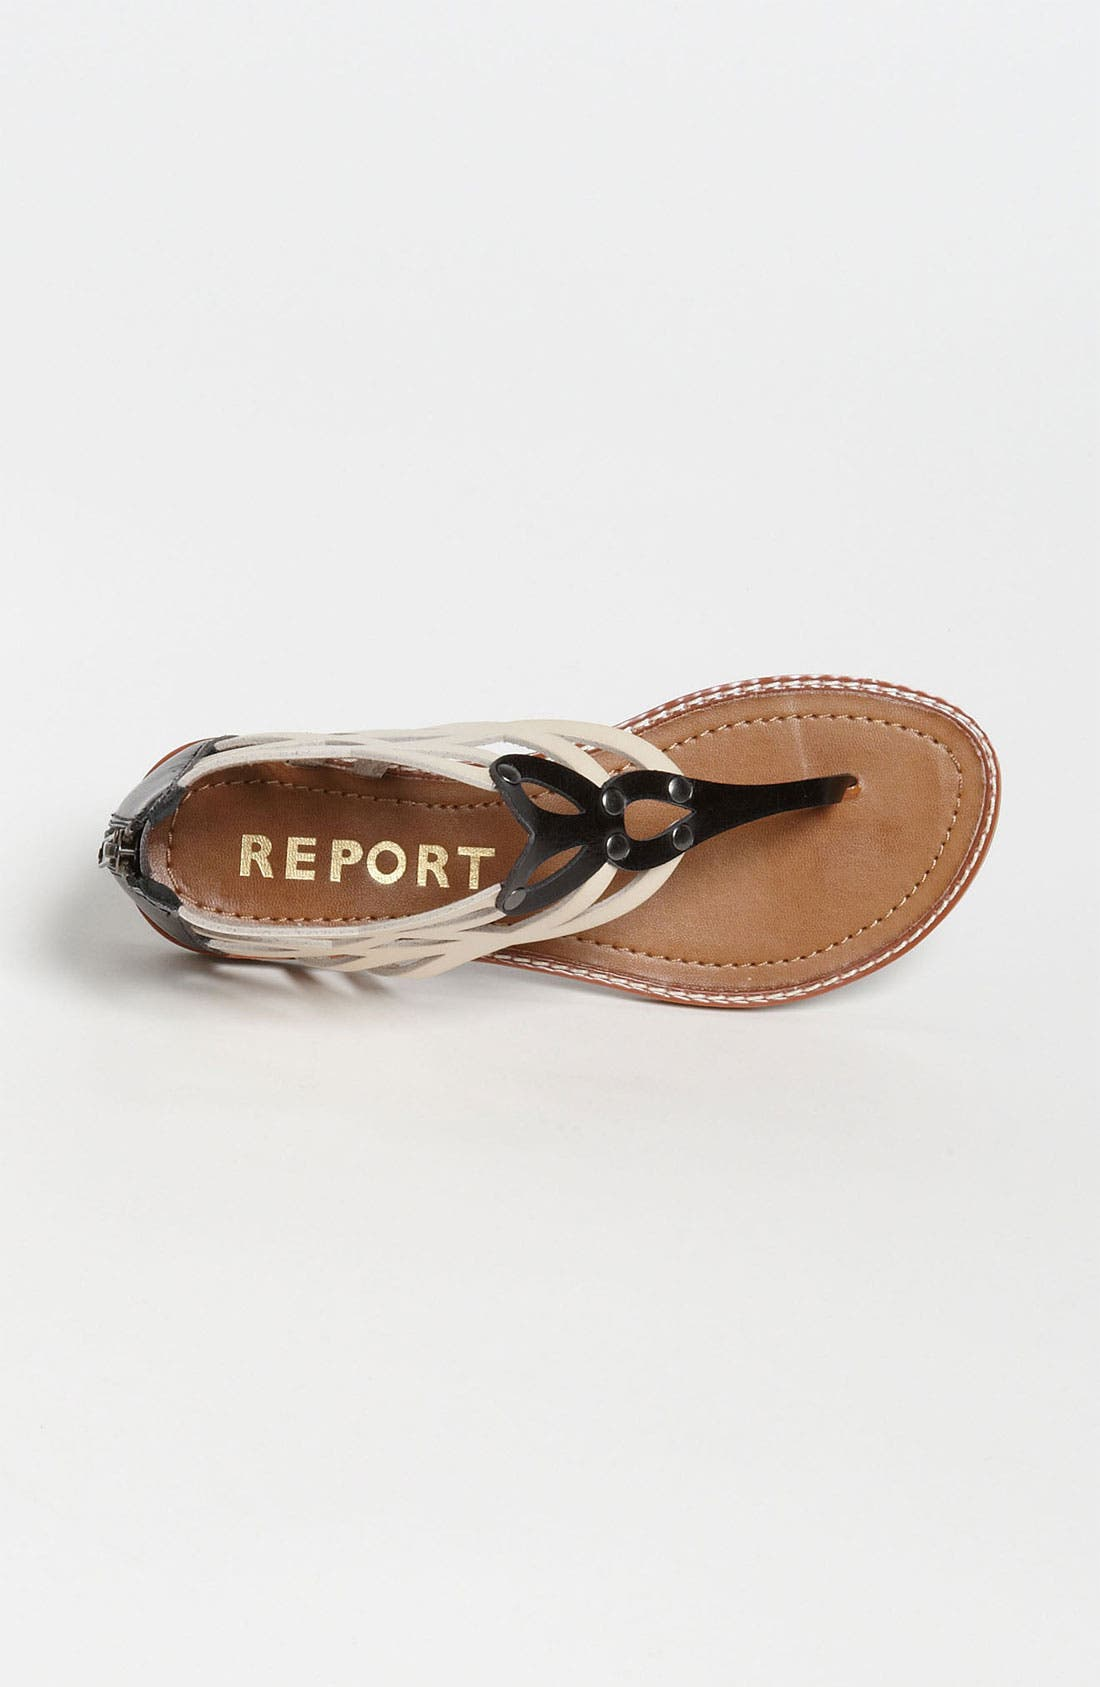 Alternate Image 3  - REPORT 'Landon' Sandal